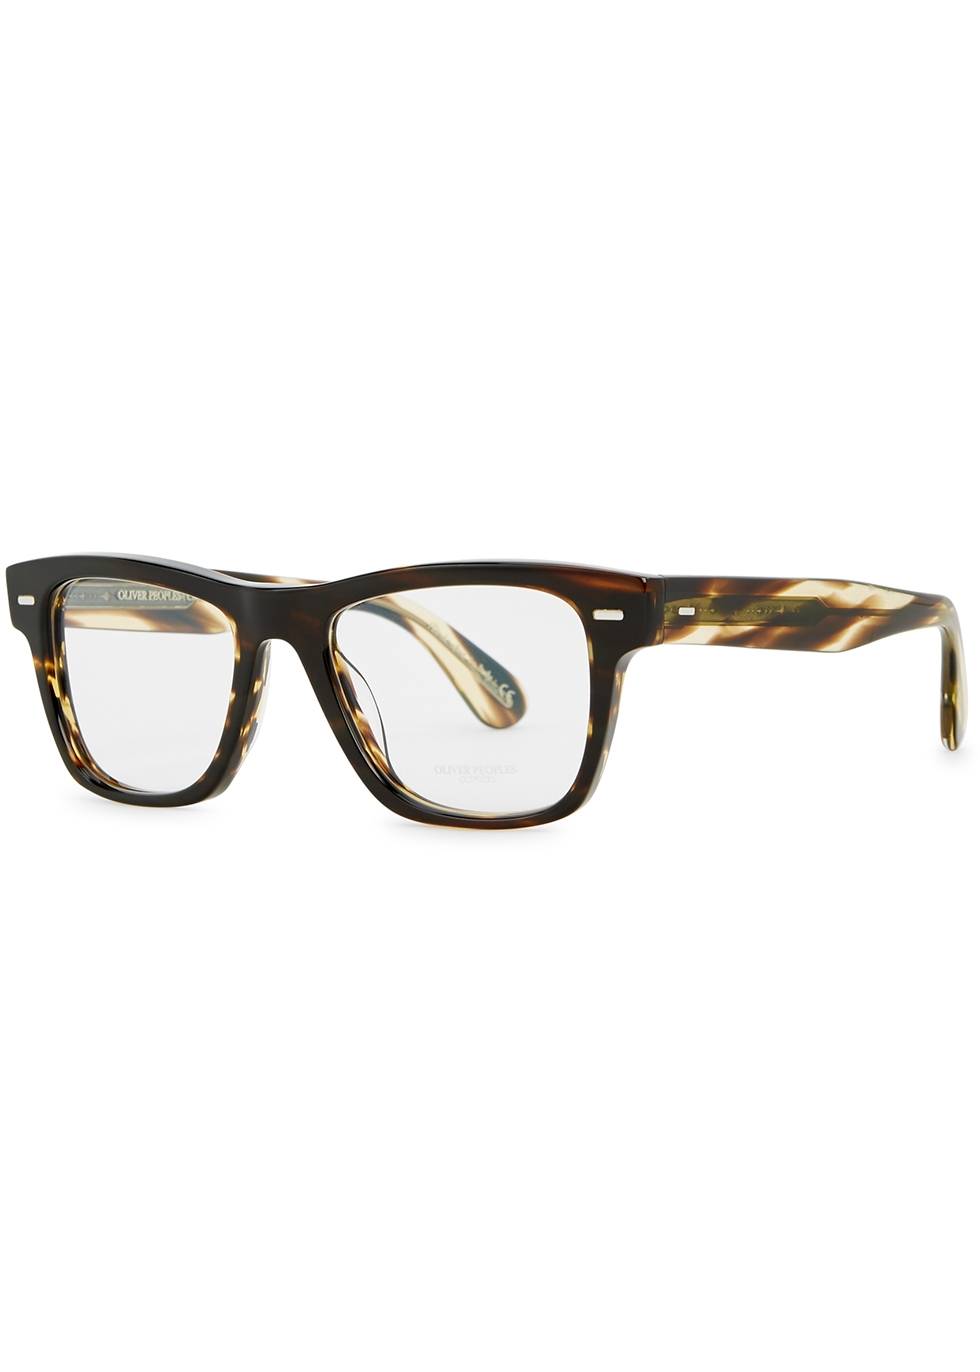 Oliver brown optical glasses - Oliver Peoples